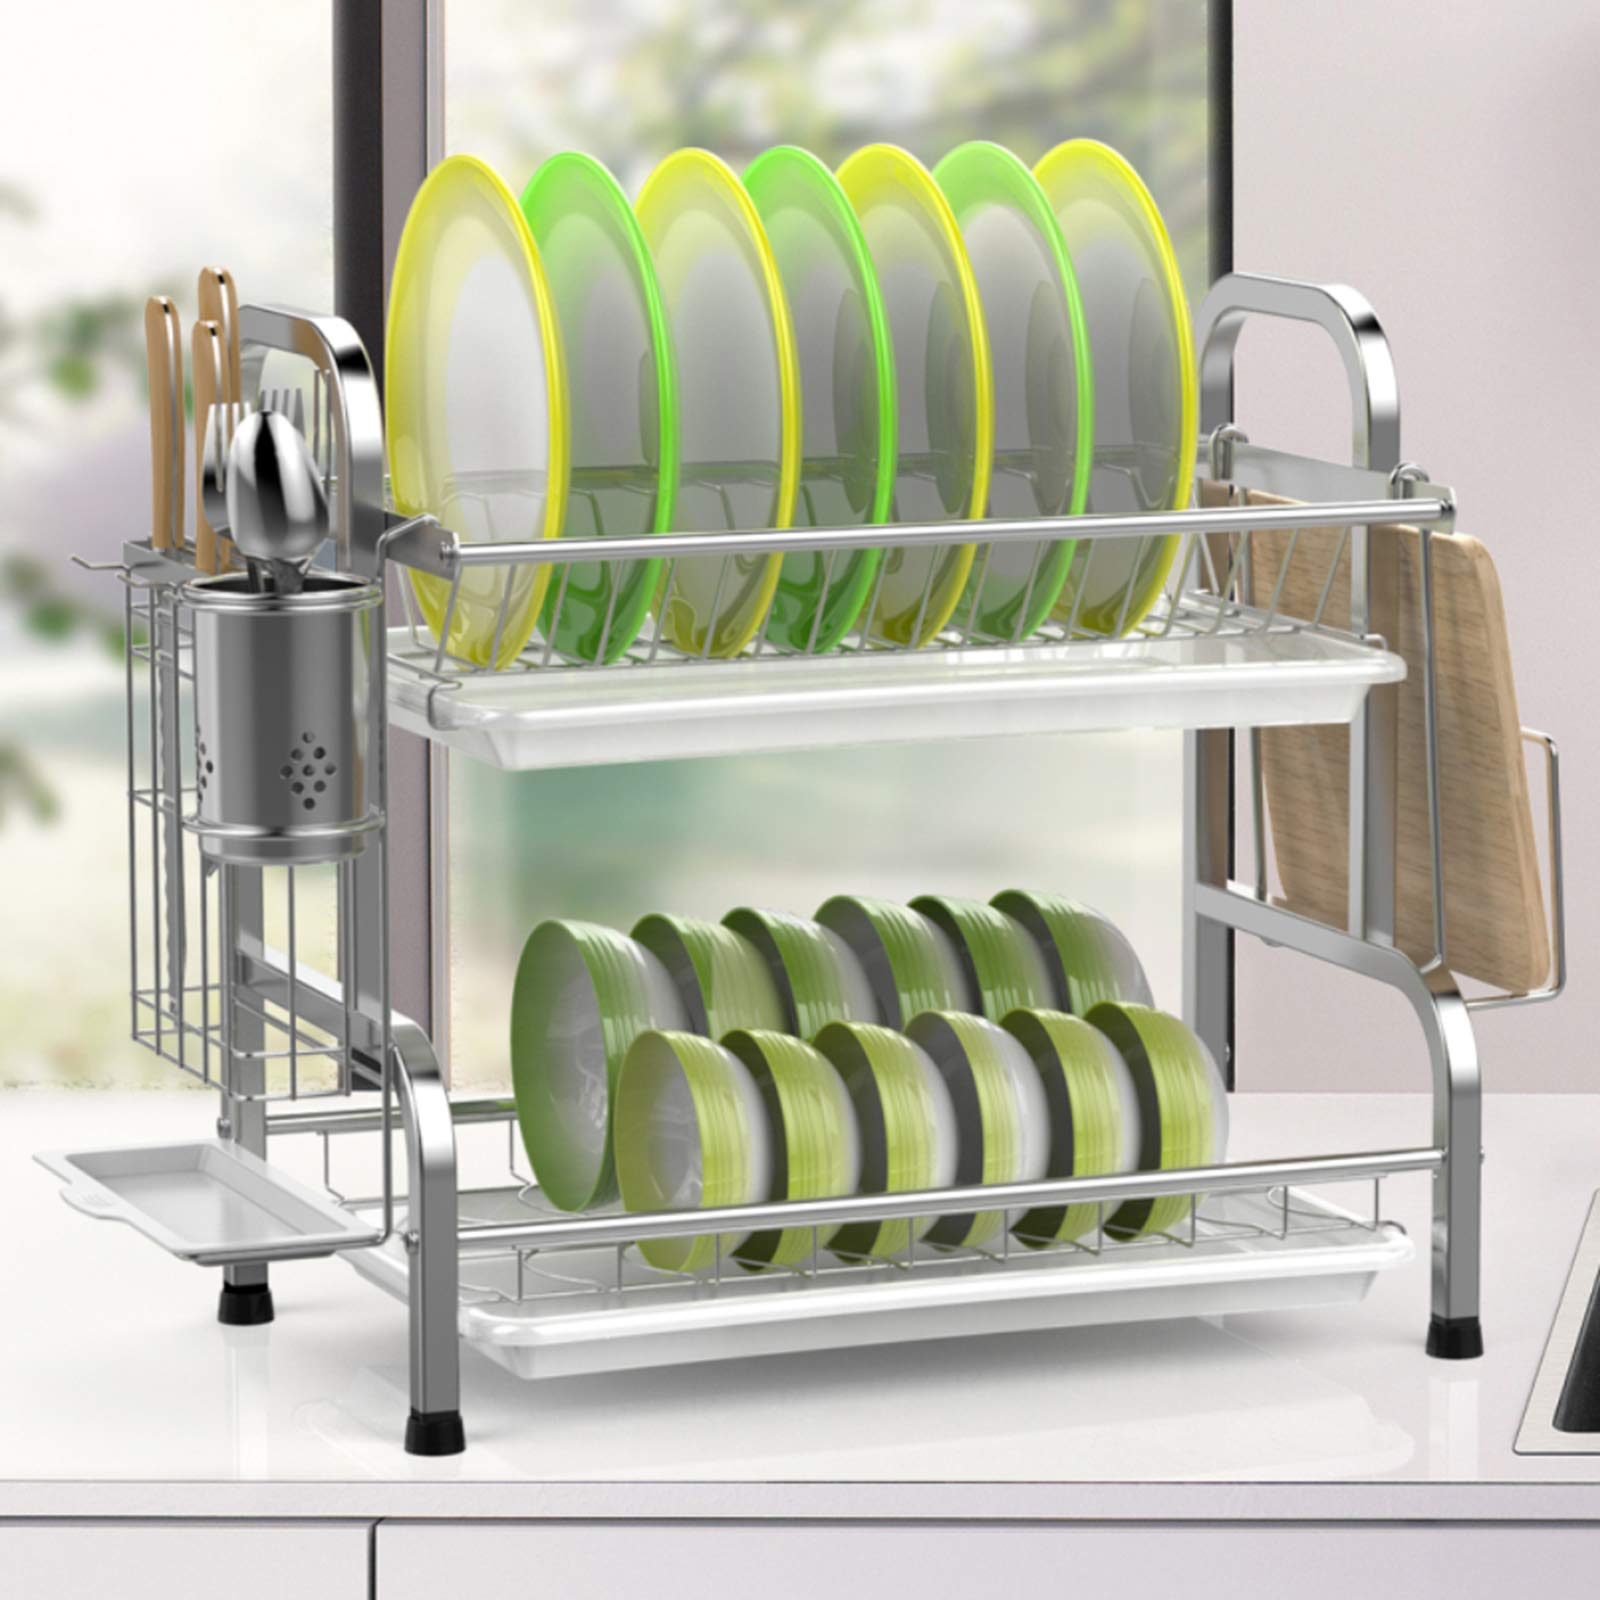 two-tier dish drainer with dishes